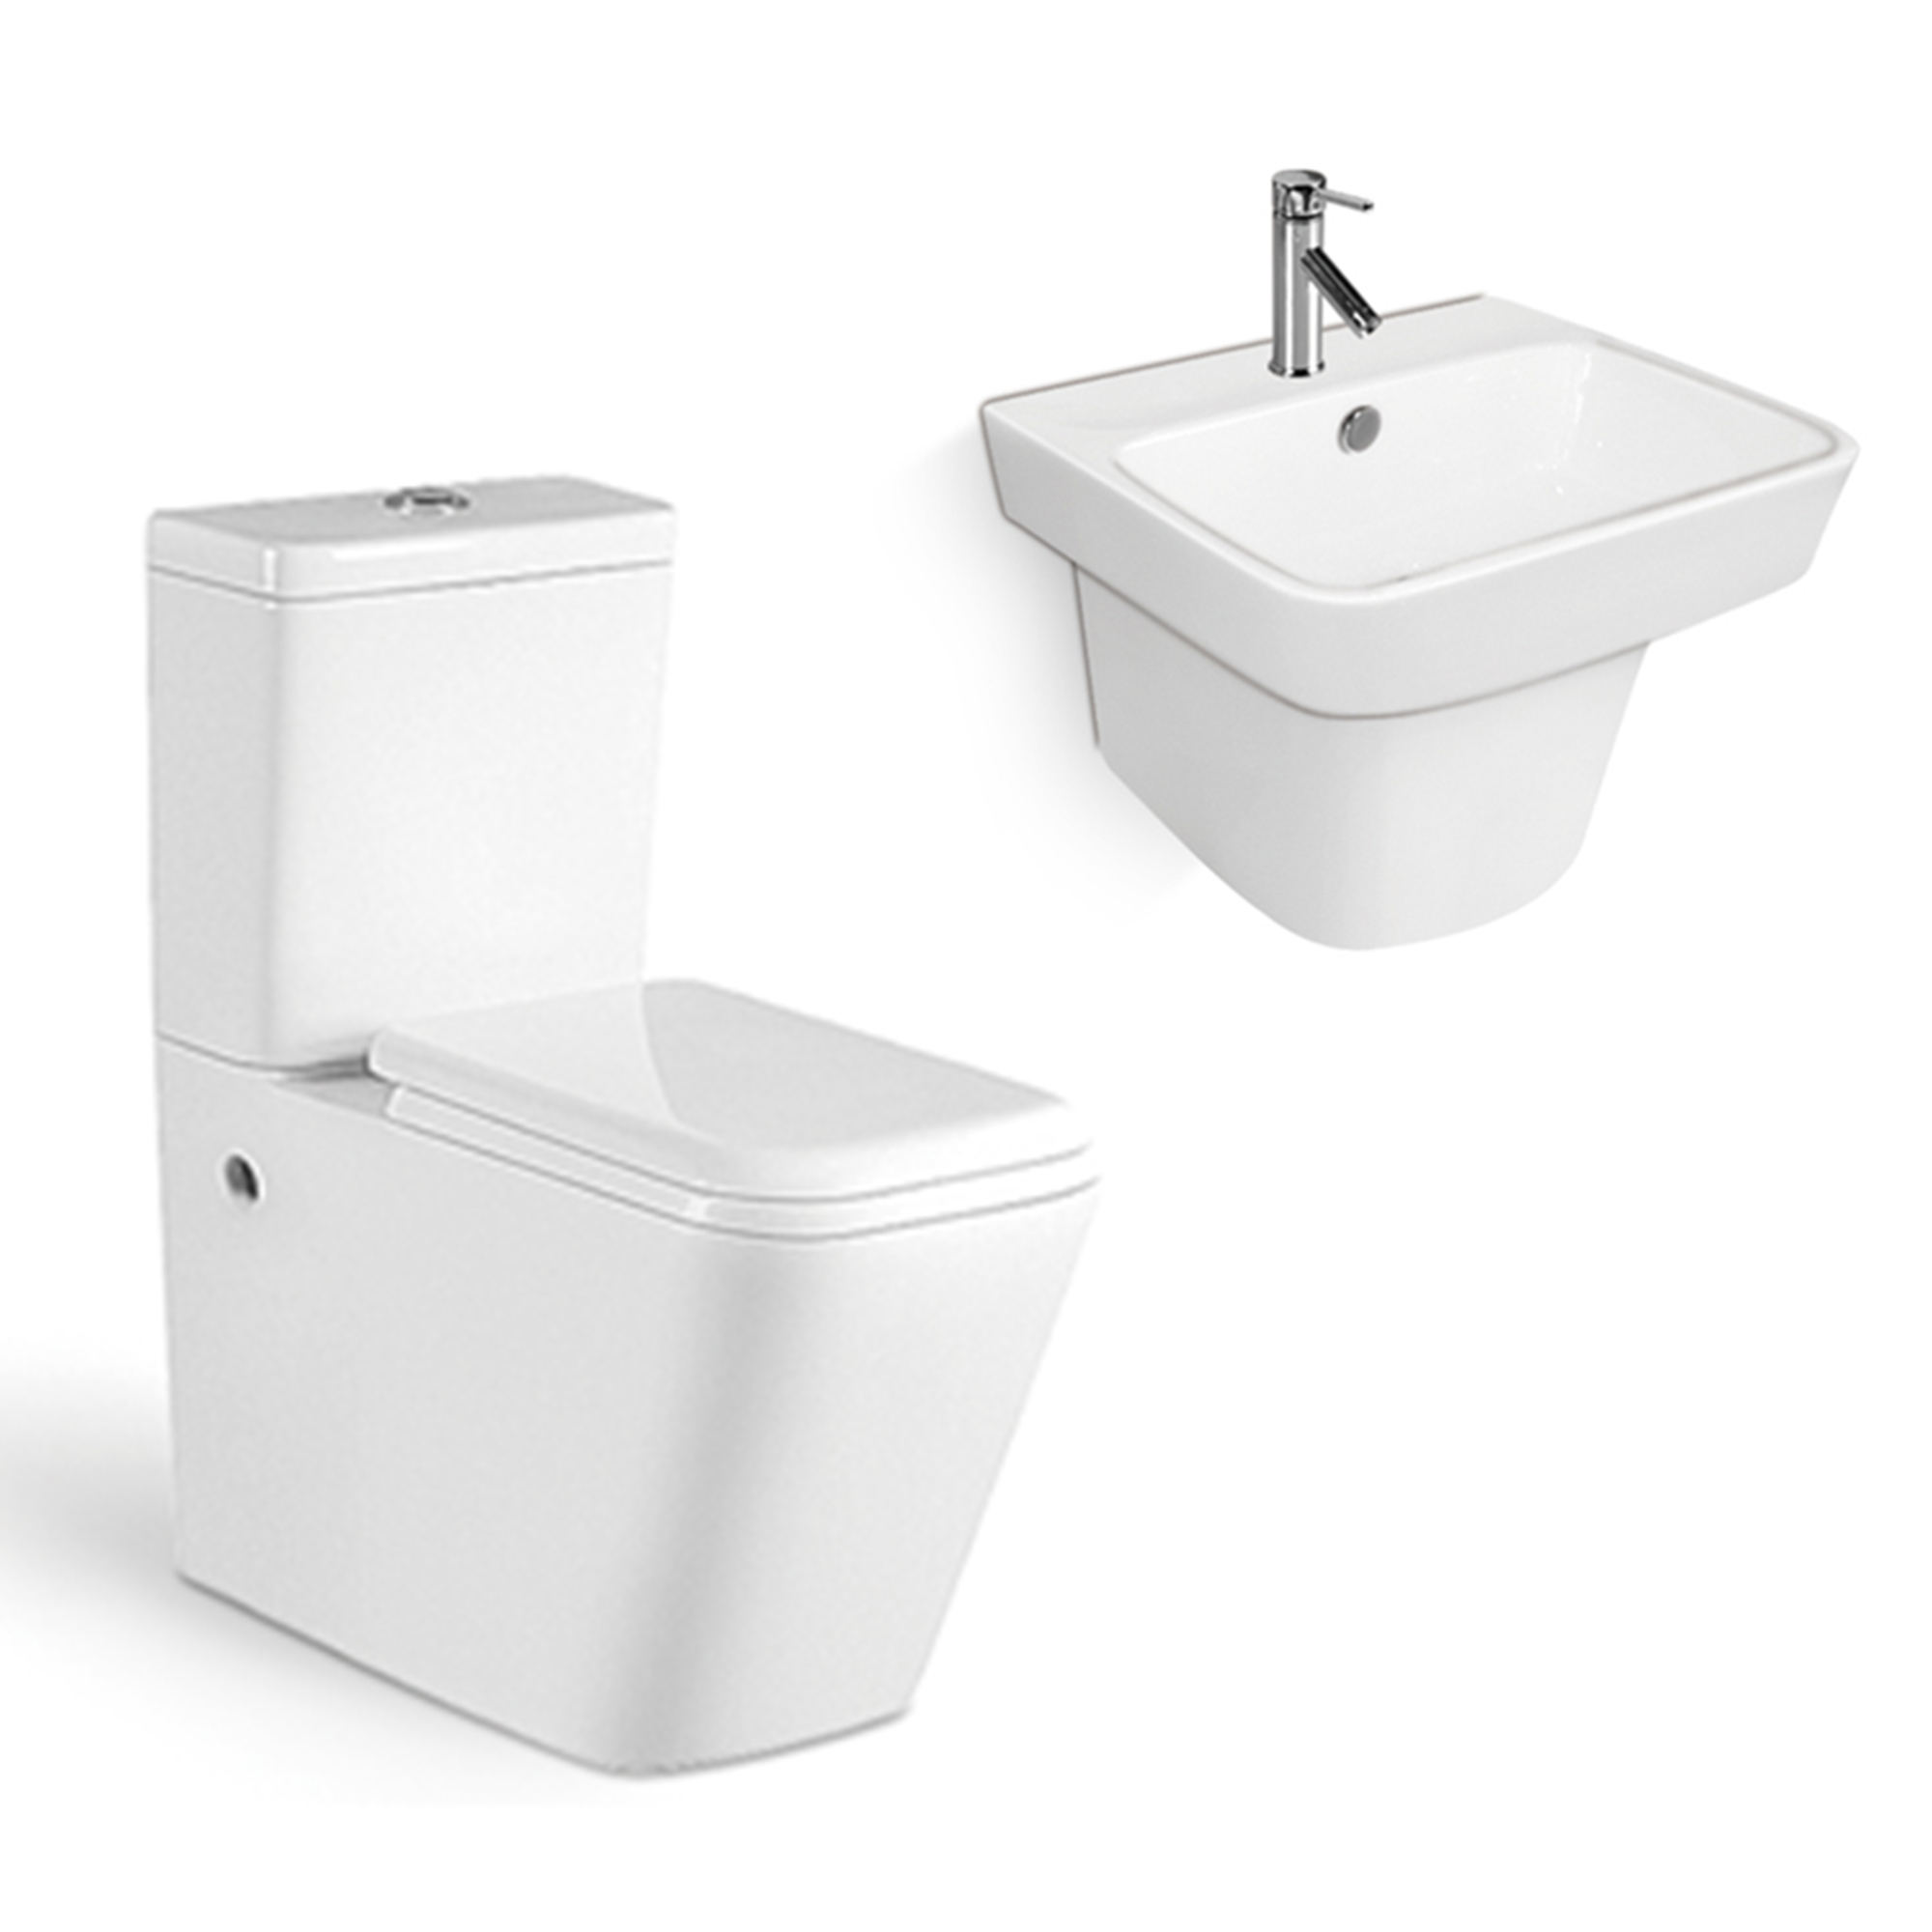 First-E5200 High Quality Sanitary Ware White Two Piece Ceramic WC Toilet Set